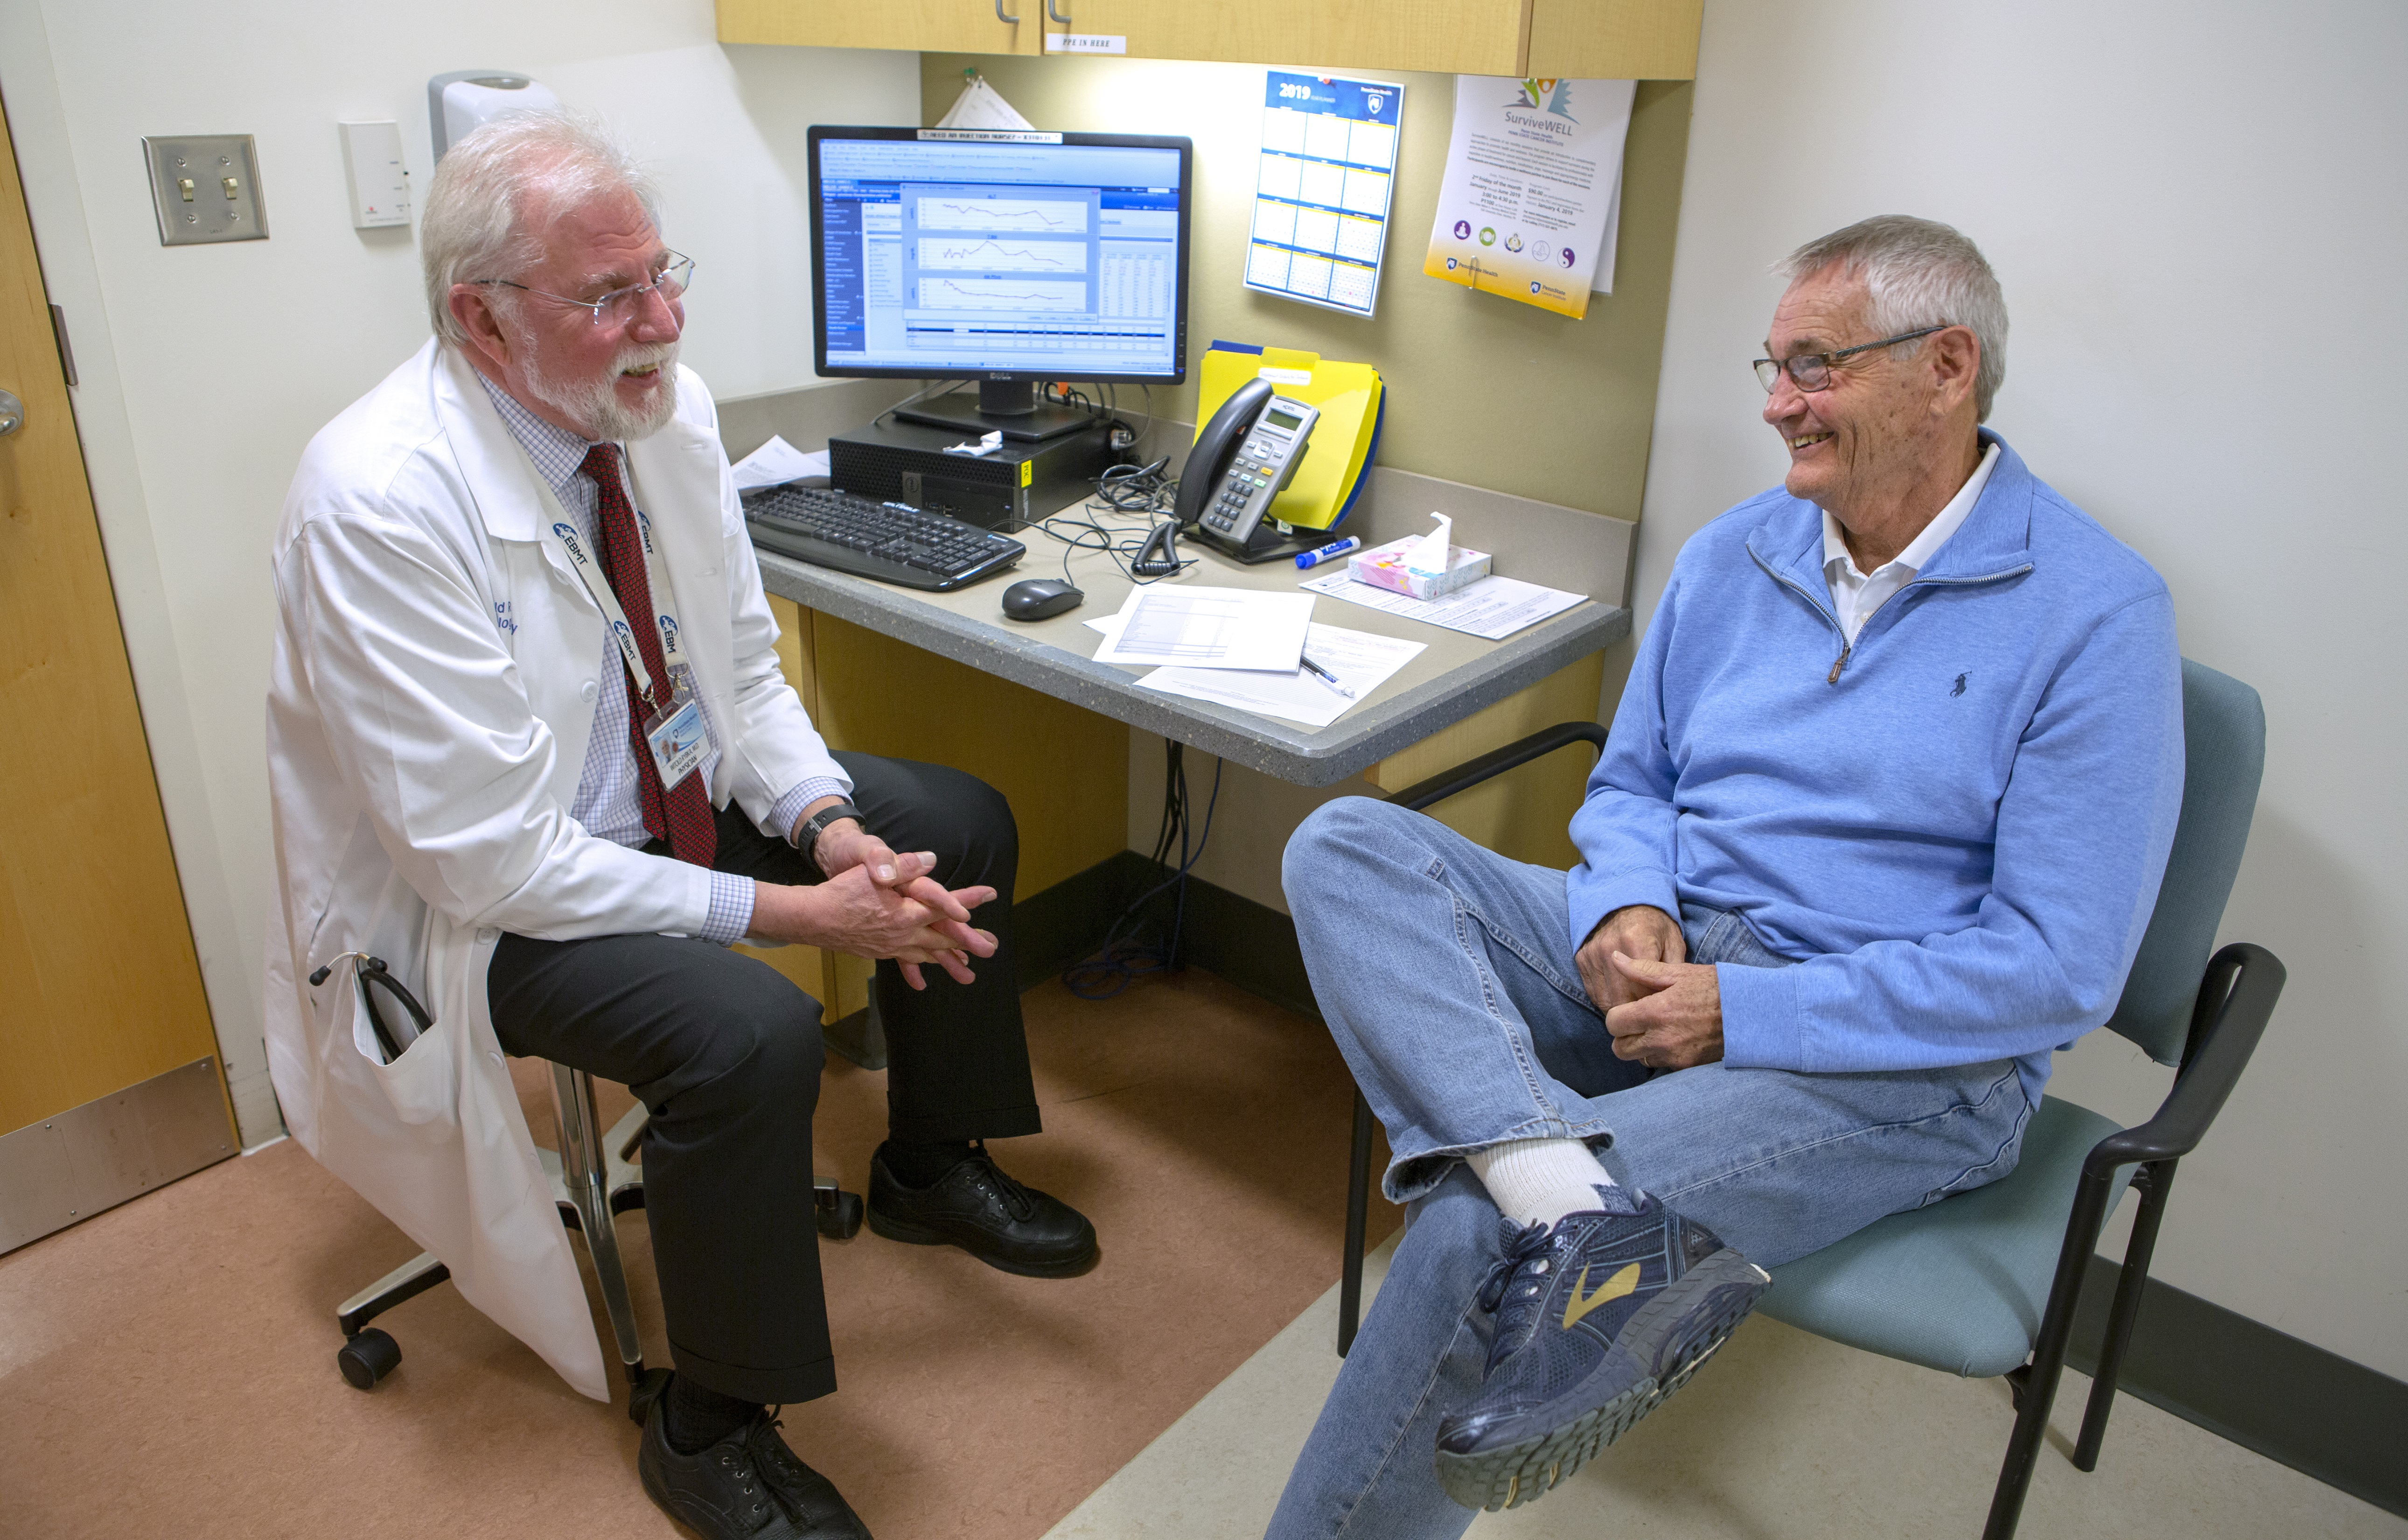 Jim Miller, right, smiles during a follow-up appointment with Dr. Witold Rybka at Penn State Cancer Institute. Miller is wearing a casual shirt, jeans and sneakers. He has gray hair and wears glasses. Dr. Rybka is wearing a lab coat, dress shirt, tie and dress pants. He has white hair, a beard and glasses. Beside them is a table with a computer, phone and papers.